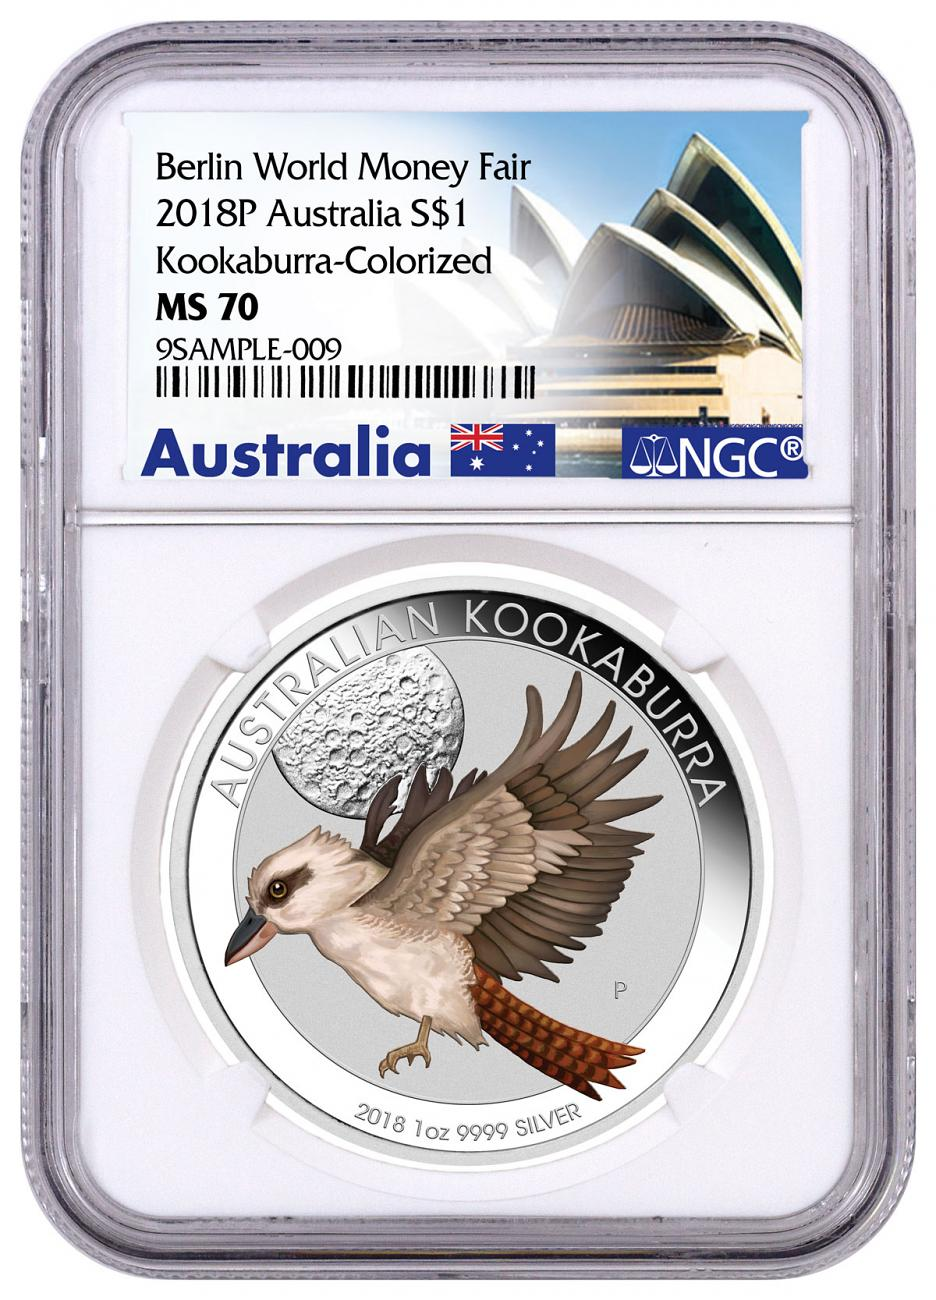 2018 Australia 1 oz Silver Kookaburra Colorized $1 Coin Berlin World Money Fair Release NGC MS70